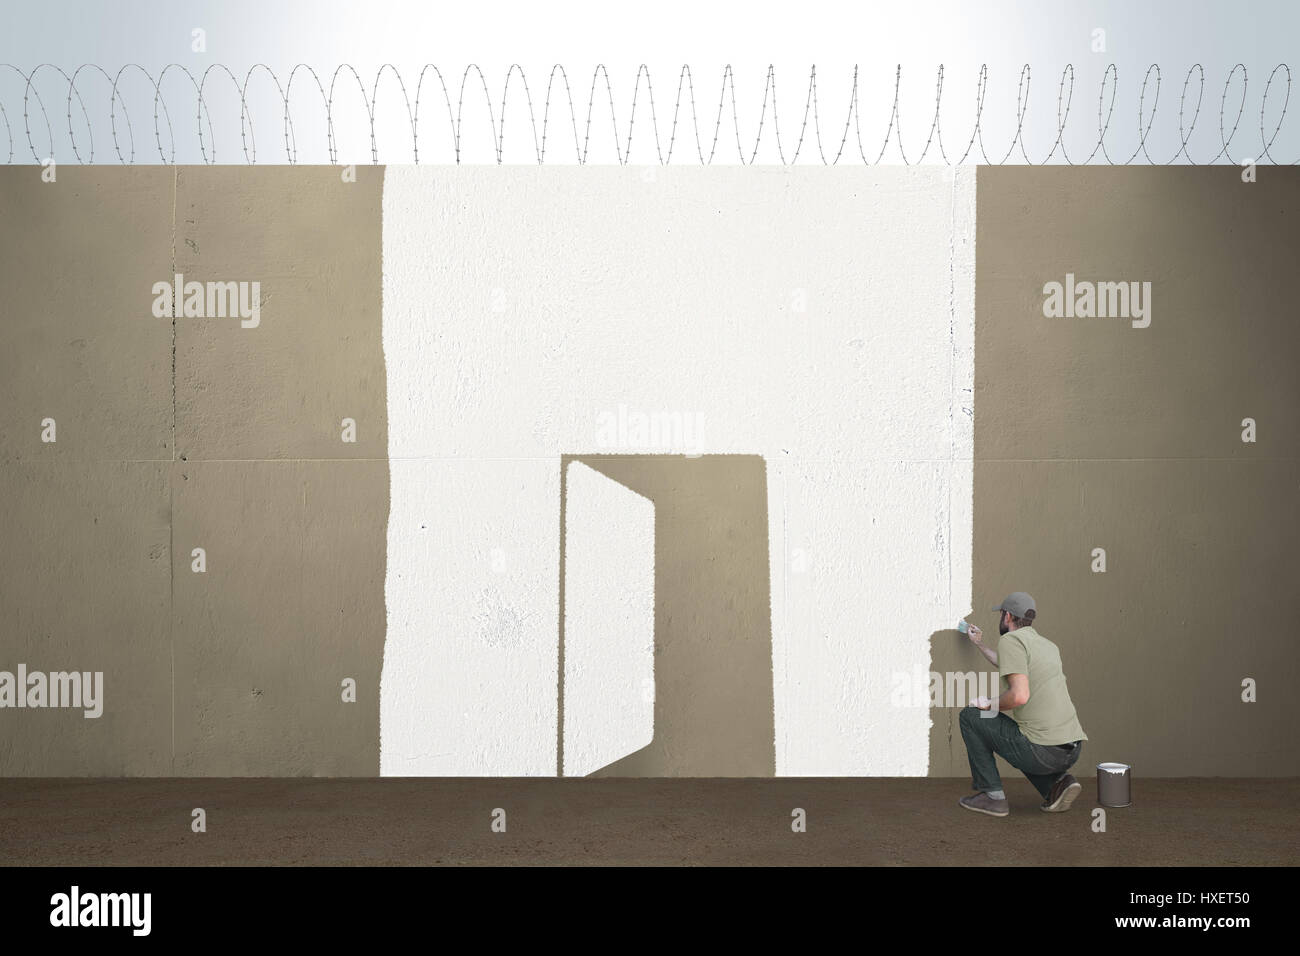 A man draws a open door on a border barrier - Stock Image